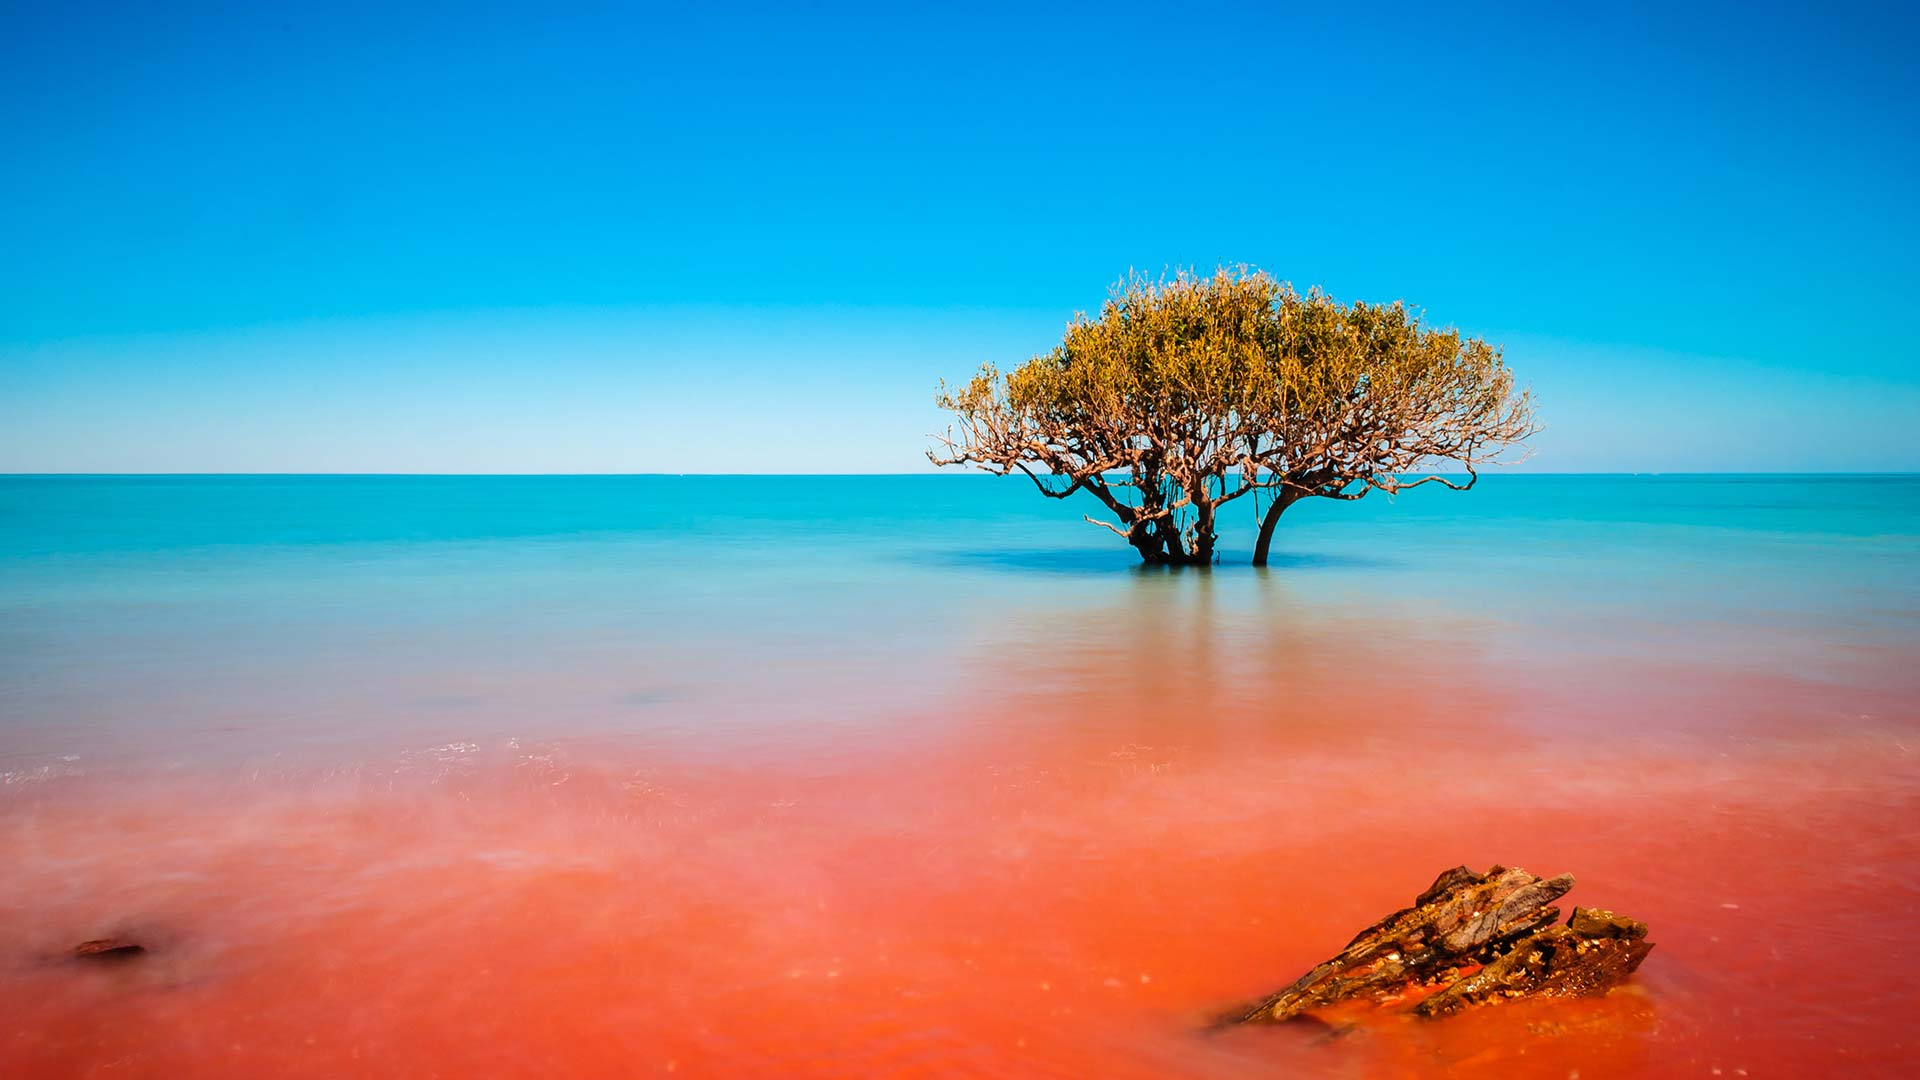 Panorama to illustrate dating in broome